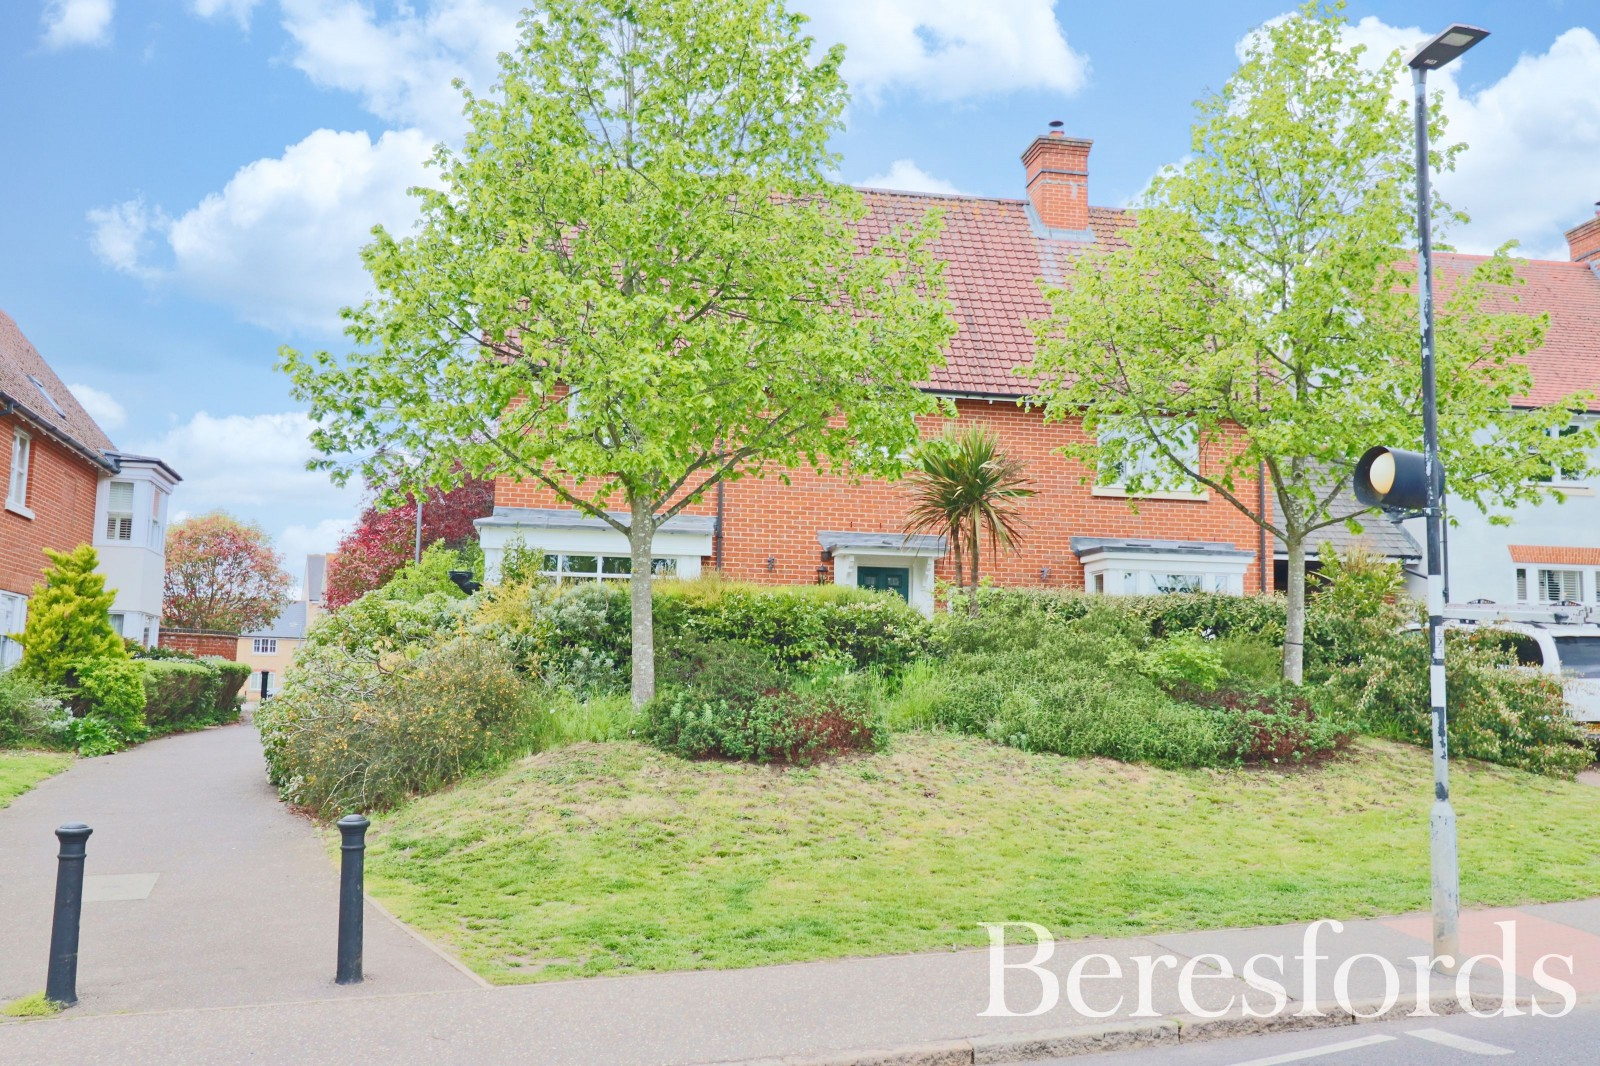 Main Road, Great Leighs, Chelmsford, Essex, CM3